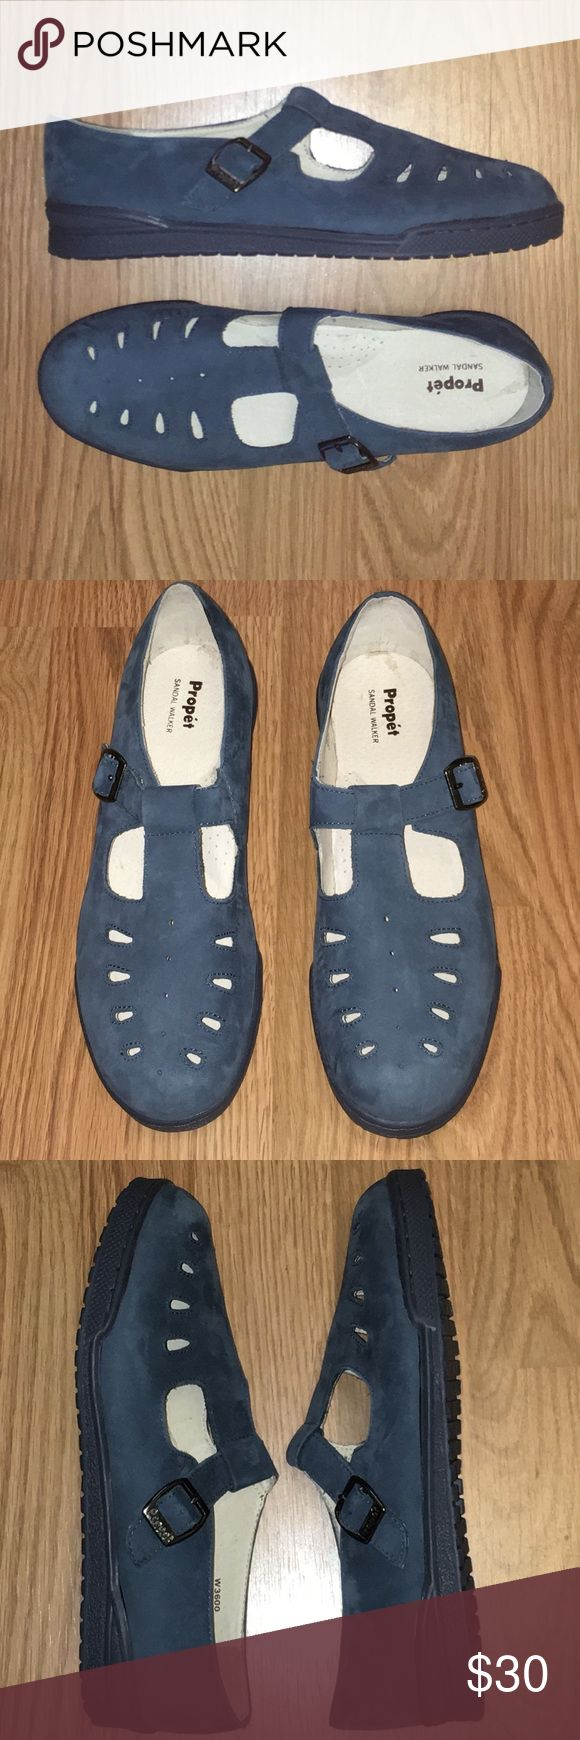 New! Propet Mary Jane T-Strap Shoes 8.5 W Wide New! Never worn. Women's Propet blue Nubuck leather sandal walkers in size 8.5W. Although they are size wide, they aren't as wide as most wide shoes. Propet Shoes Flats & Loafers